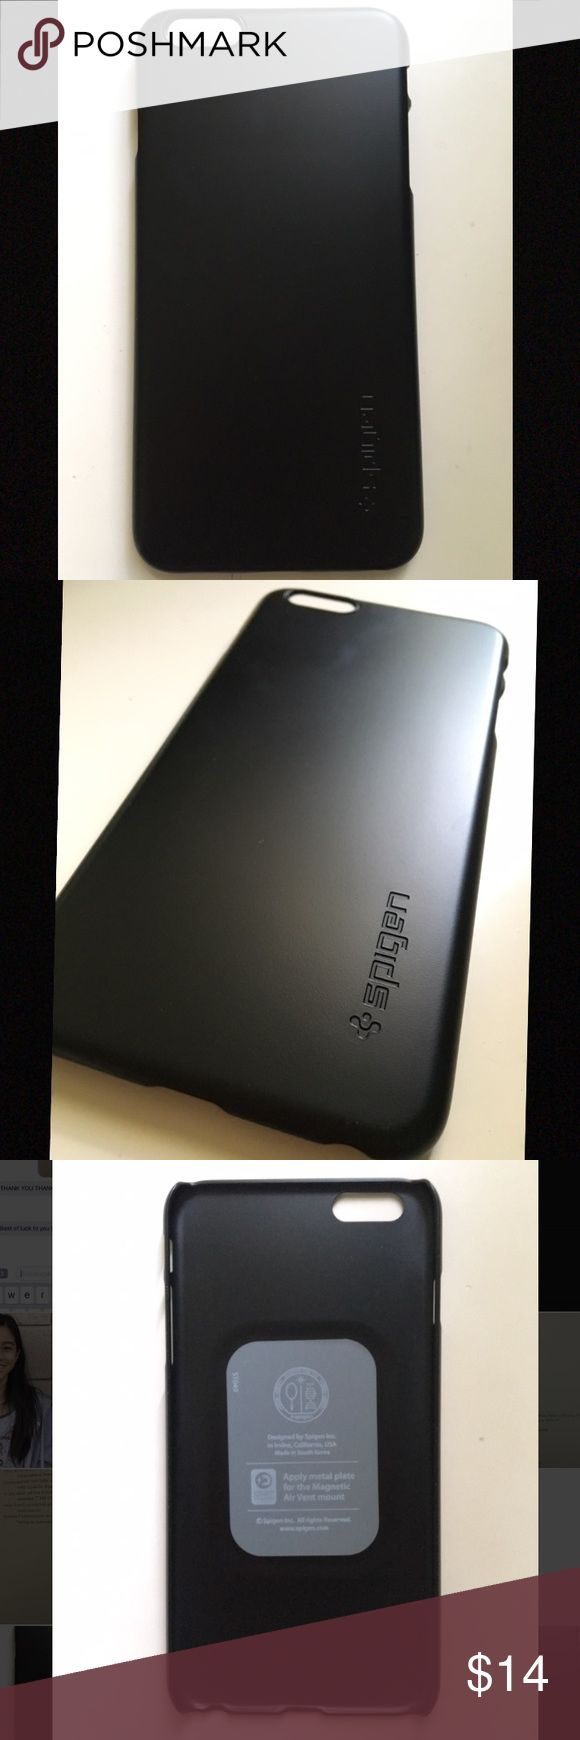 Spigen iPhone 6s plus/6 plus case Black Brand new, Never used. I just ordered the wrong size for my phone. Made in South Korea. Slim design for perfect grip. Thin fit. The brand name is Spigen. Its a matte black case with the brand name printed small on the bottom as shown in the picture above Spigen Accessories Phone Cases